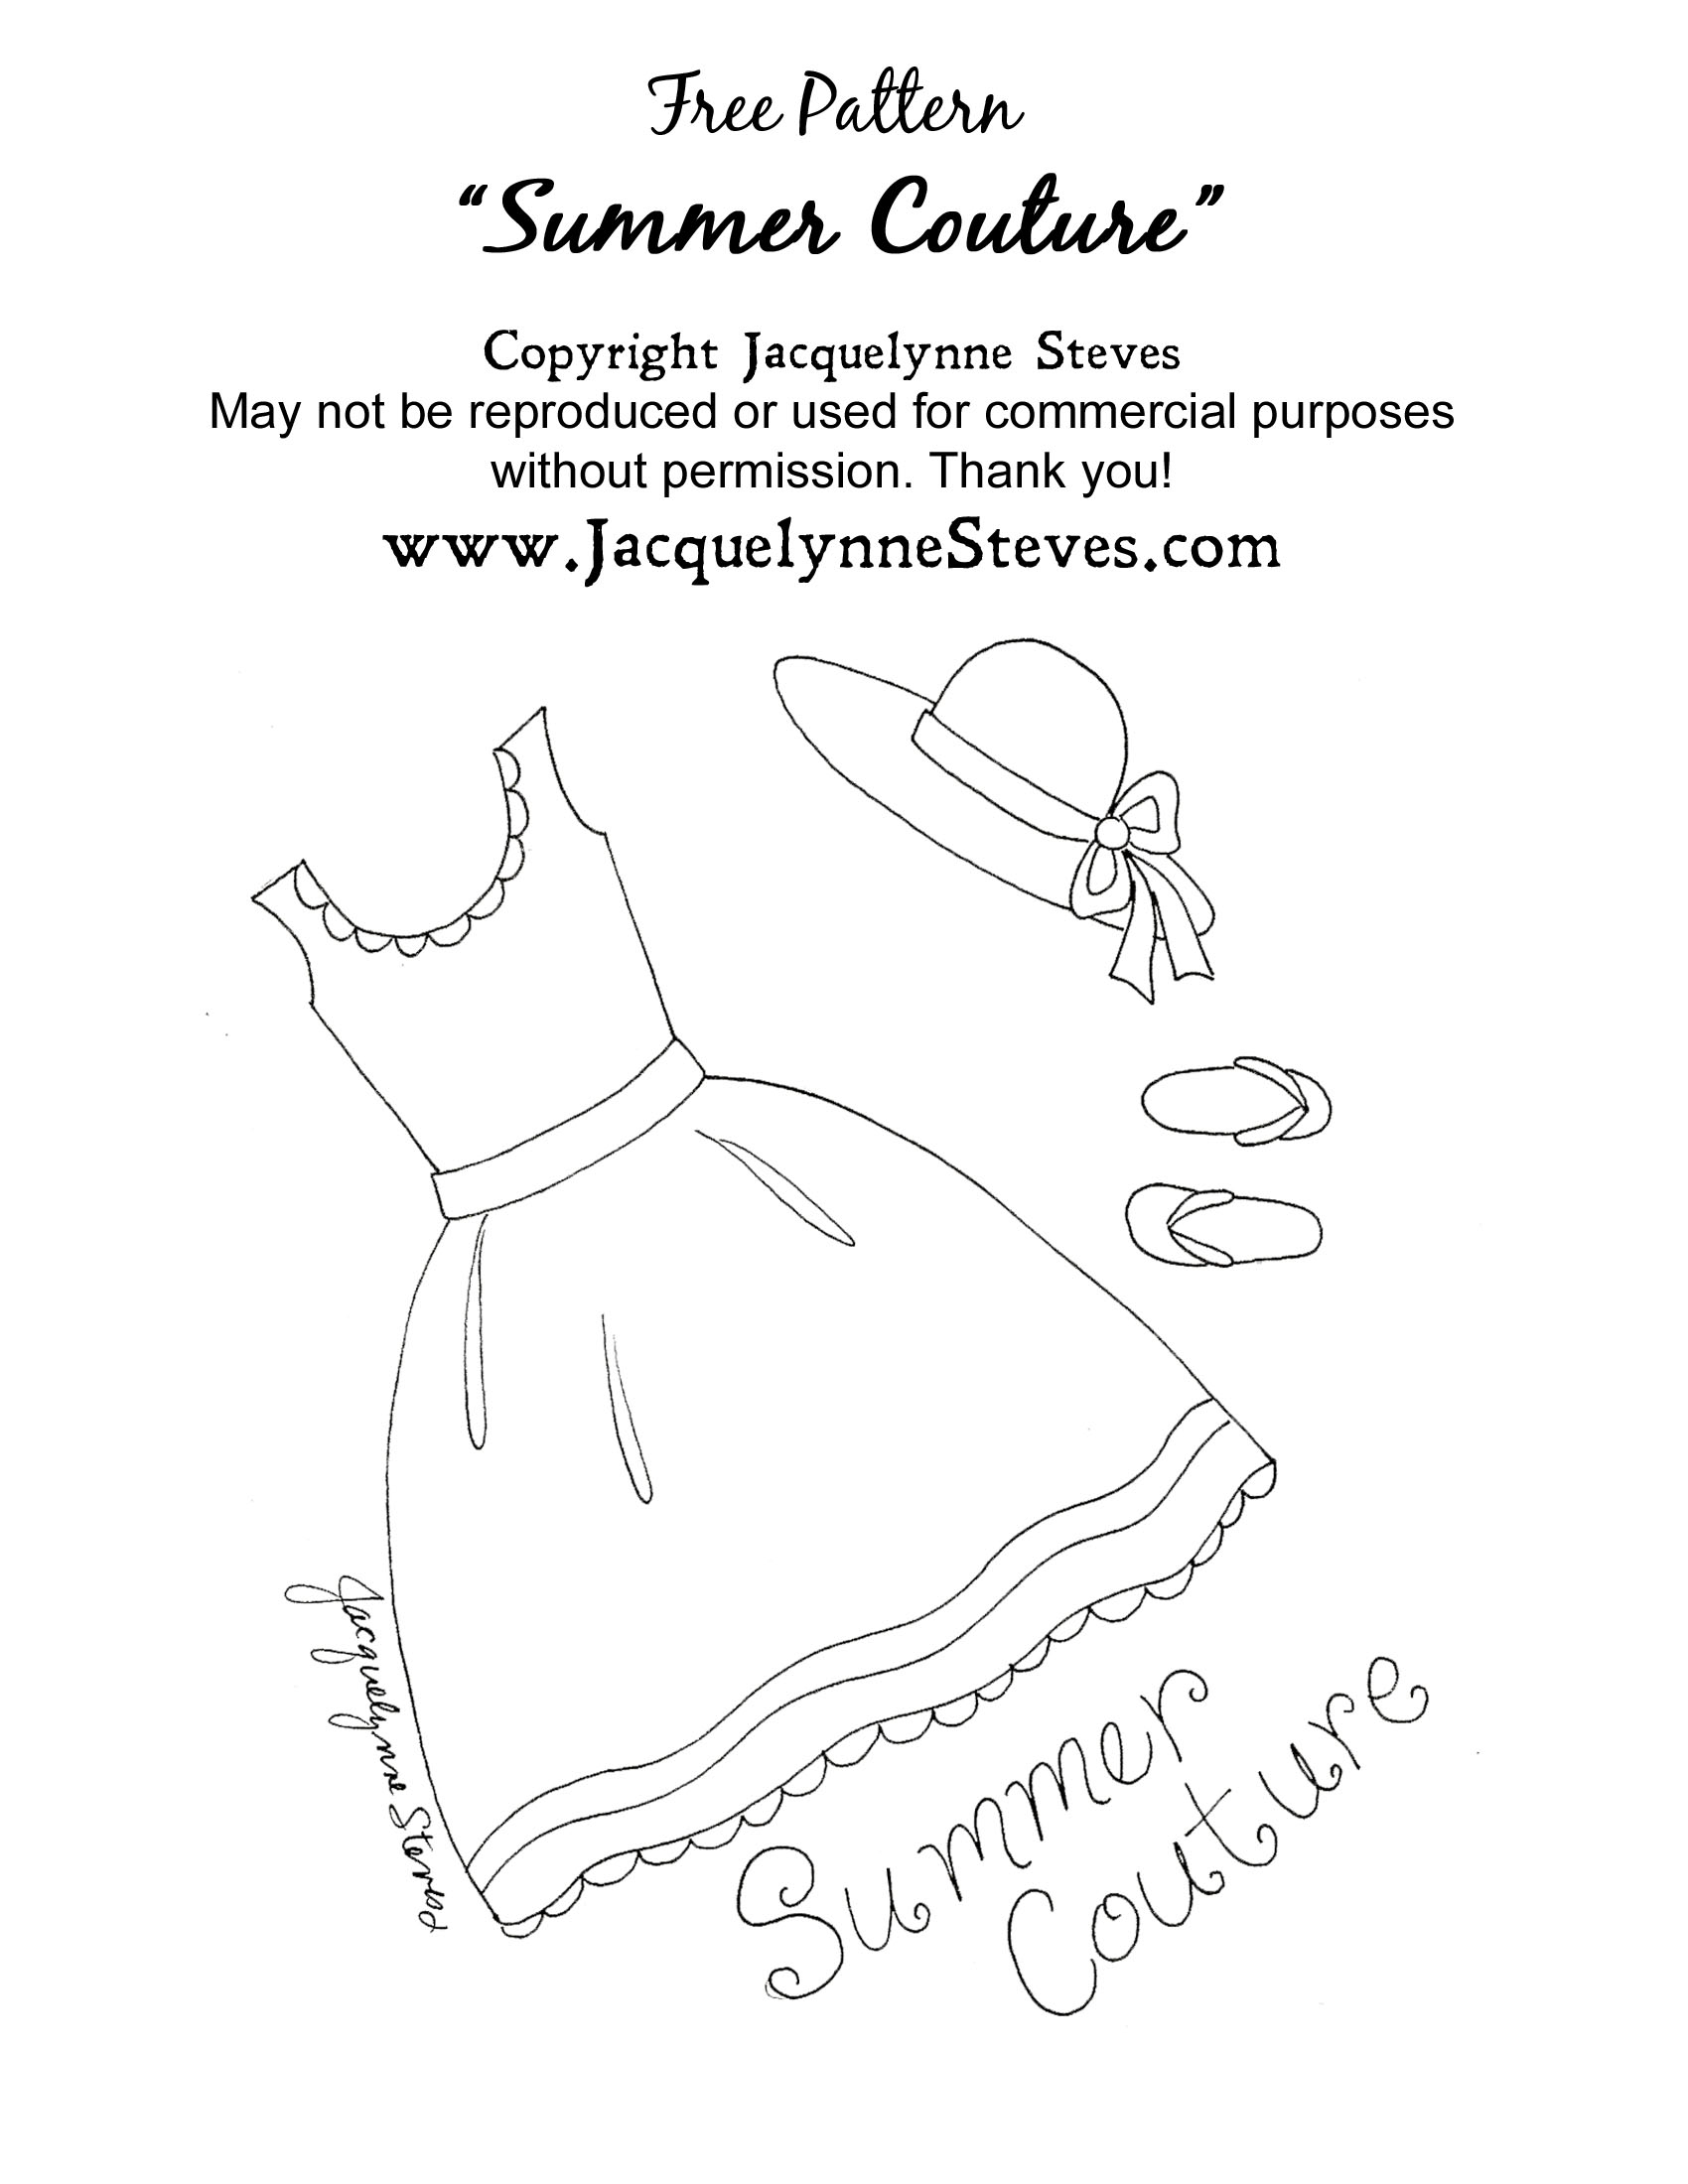 Free Hand Embroidery Pattern Free Summer Couture Embroidery Pattern Jacquelynne Steves